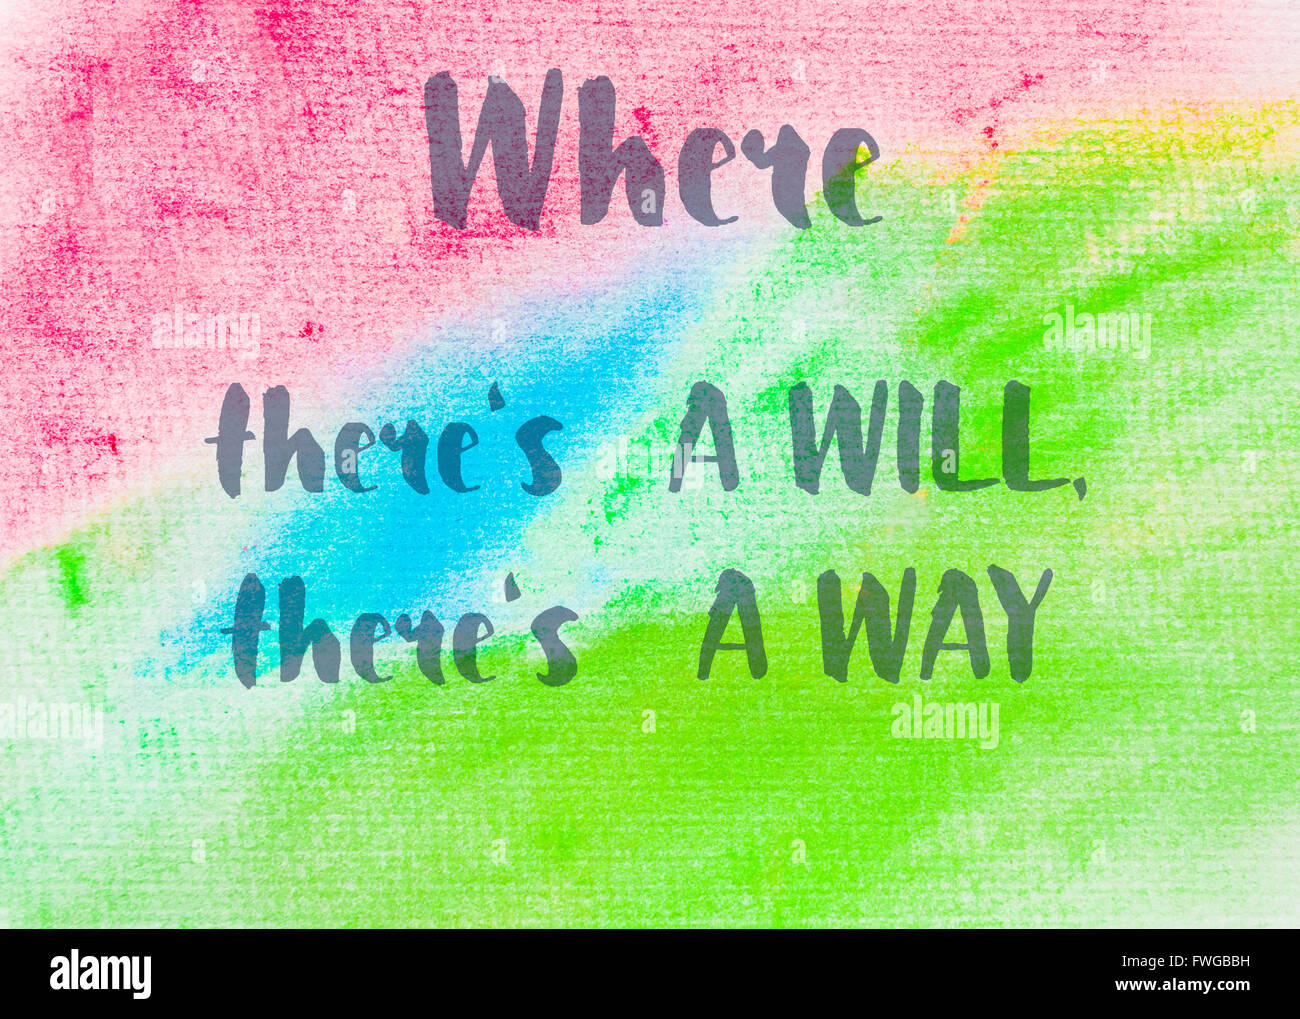 Where Theres A Will Theres A Way Inspirational Quote Over Stock